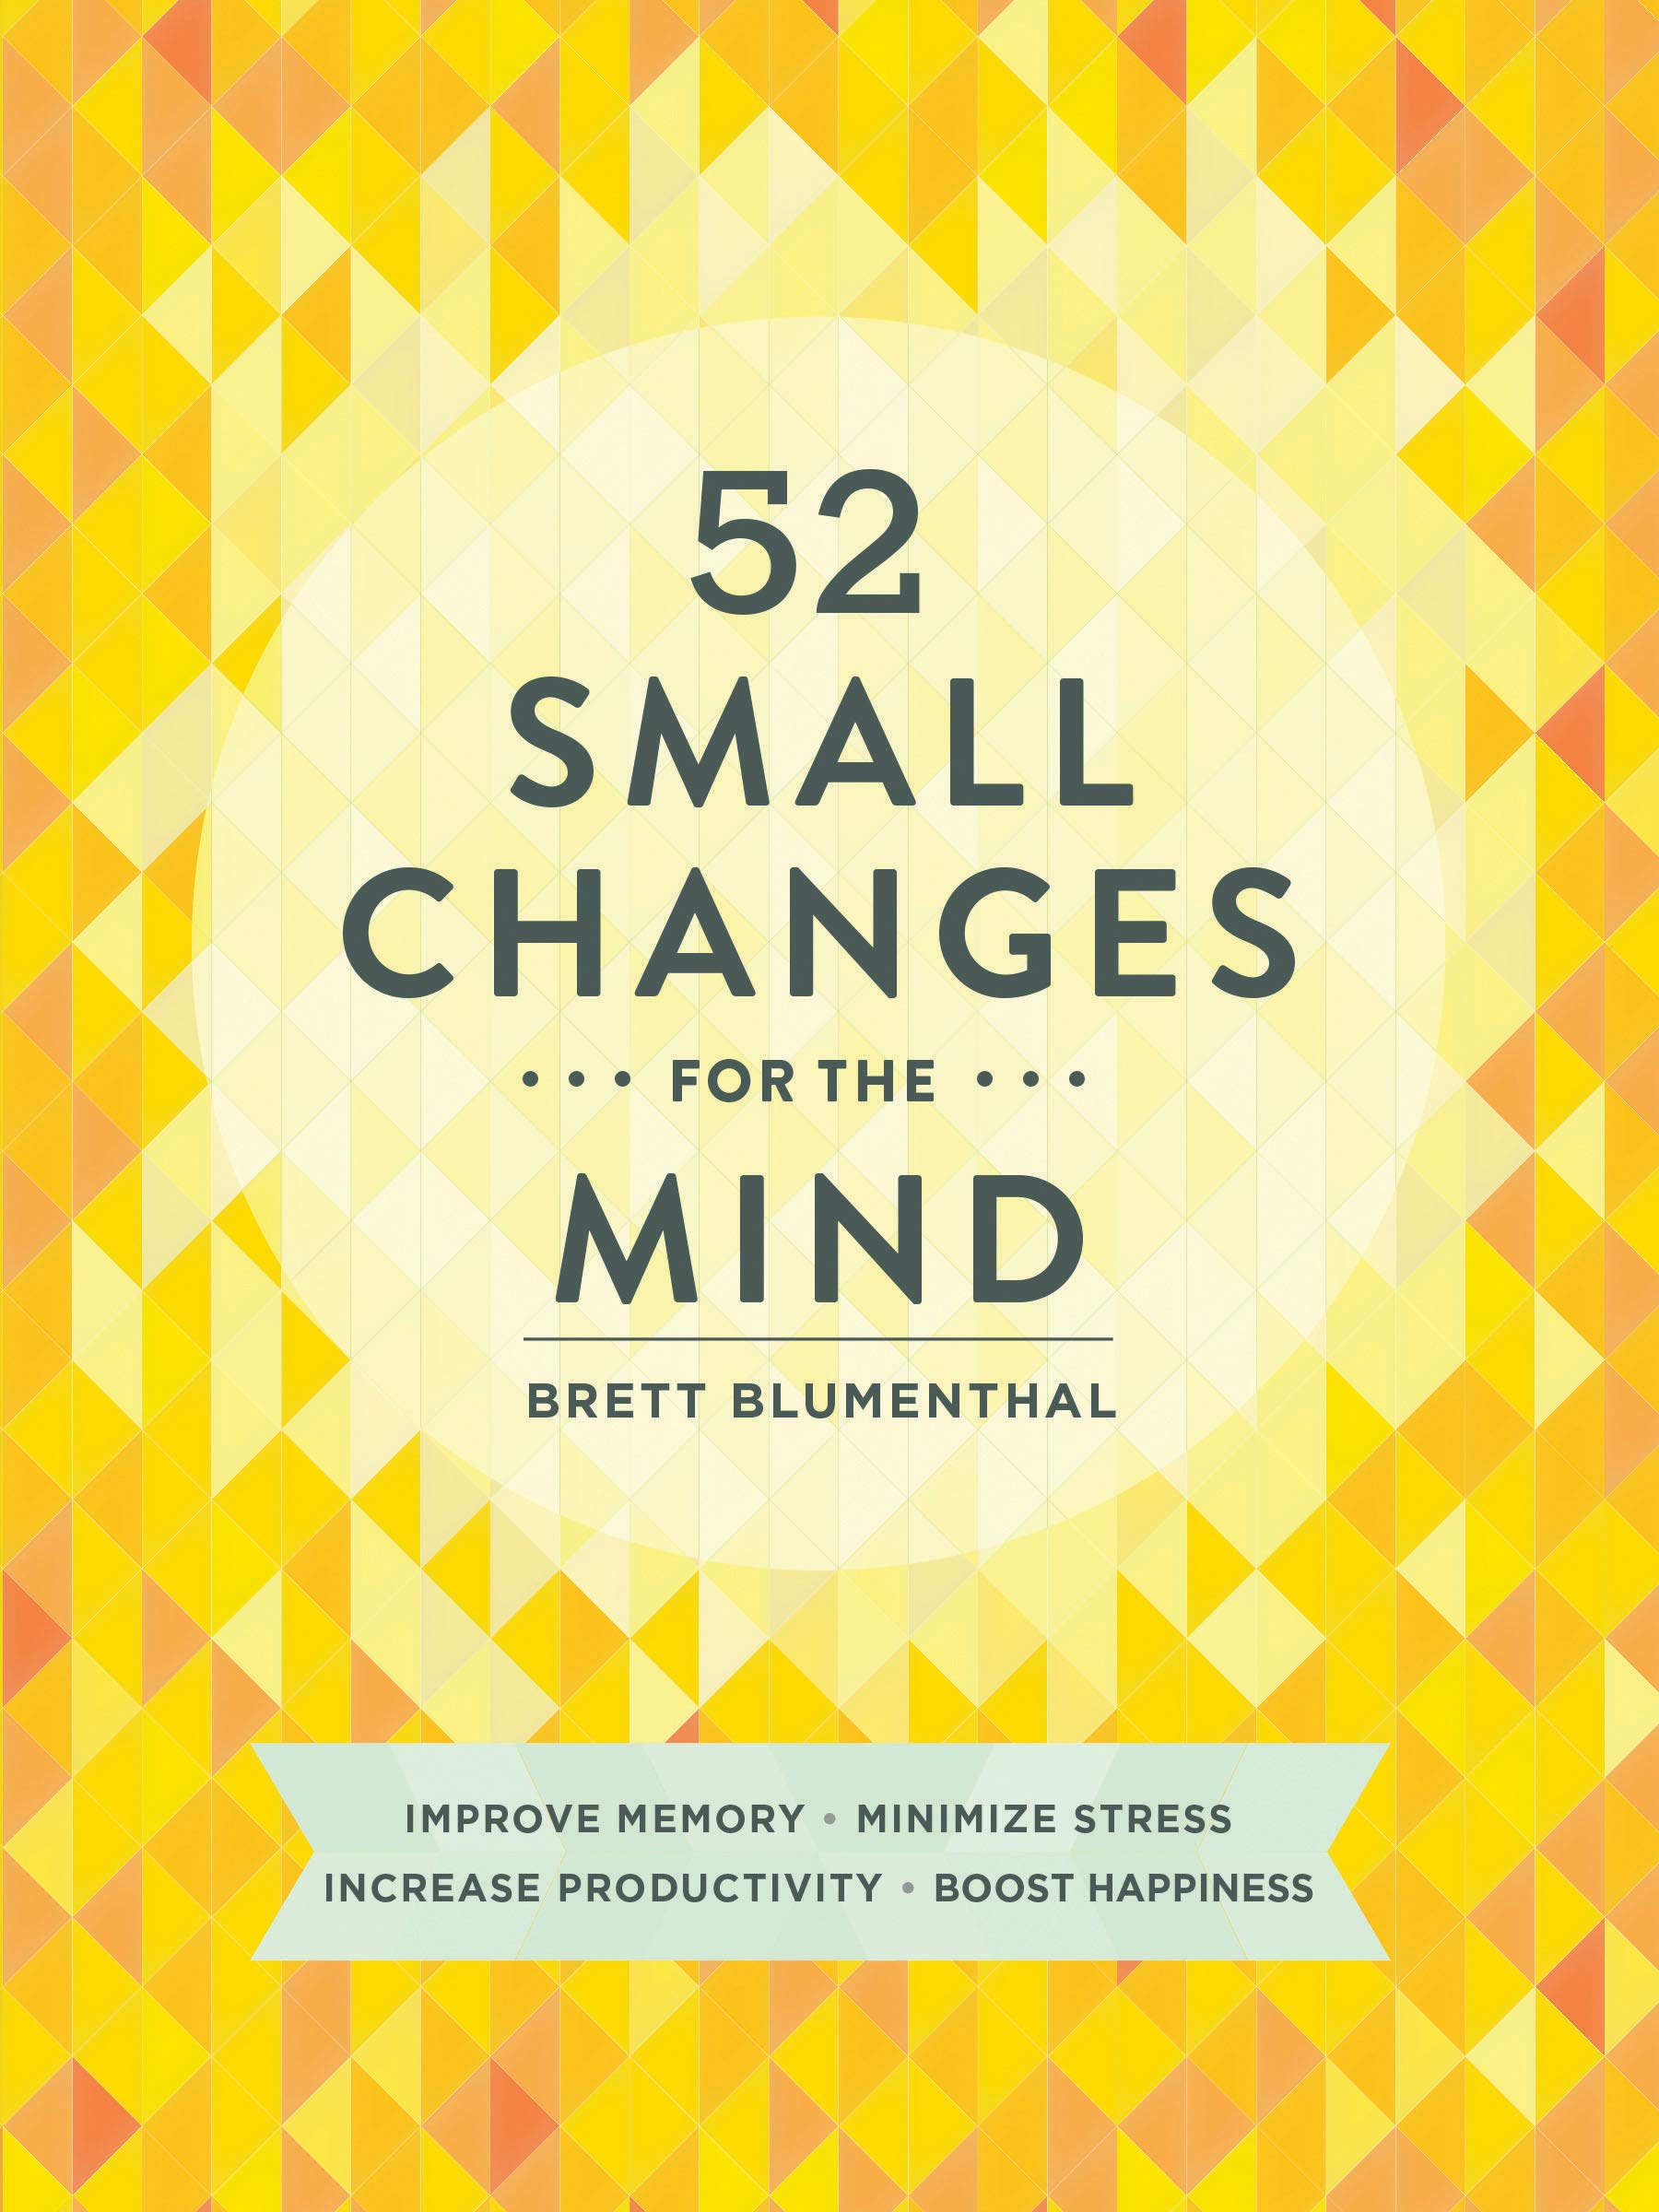 52 Small Changes for the Mind by Brett Blumenthal - Book for self-development